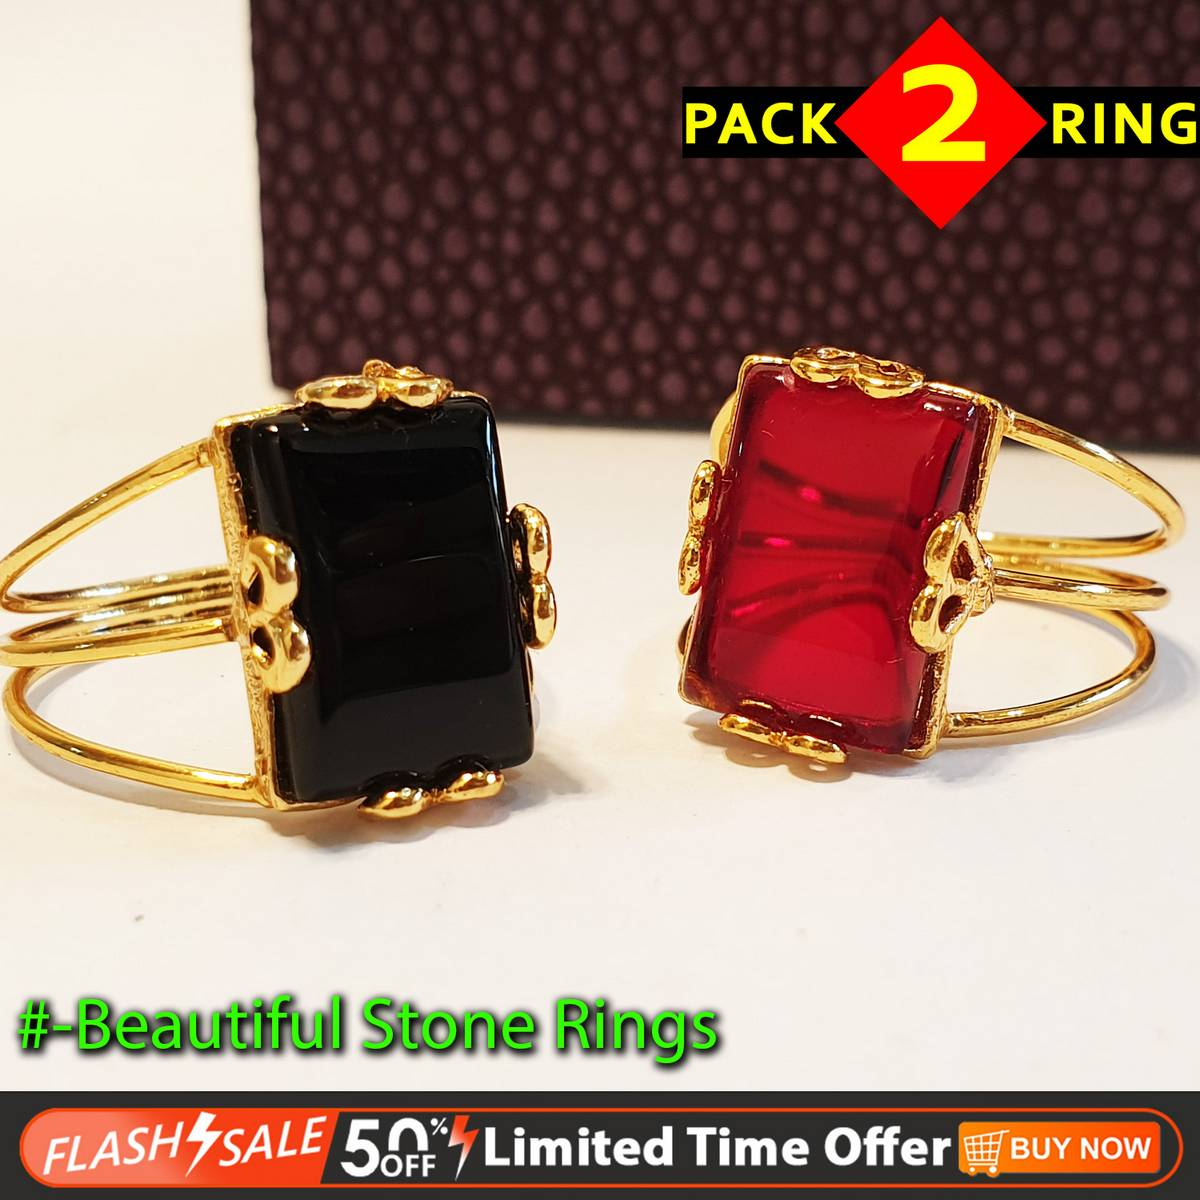 Pack of 2 - Stylish Gold Plated Rings For Lady Girl - Wholesale Price